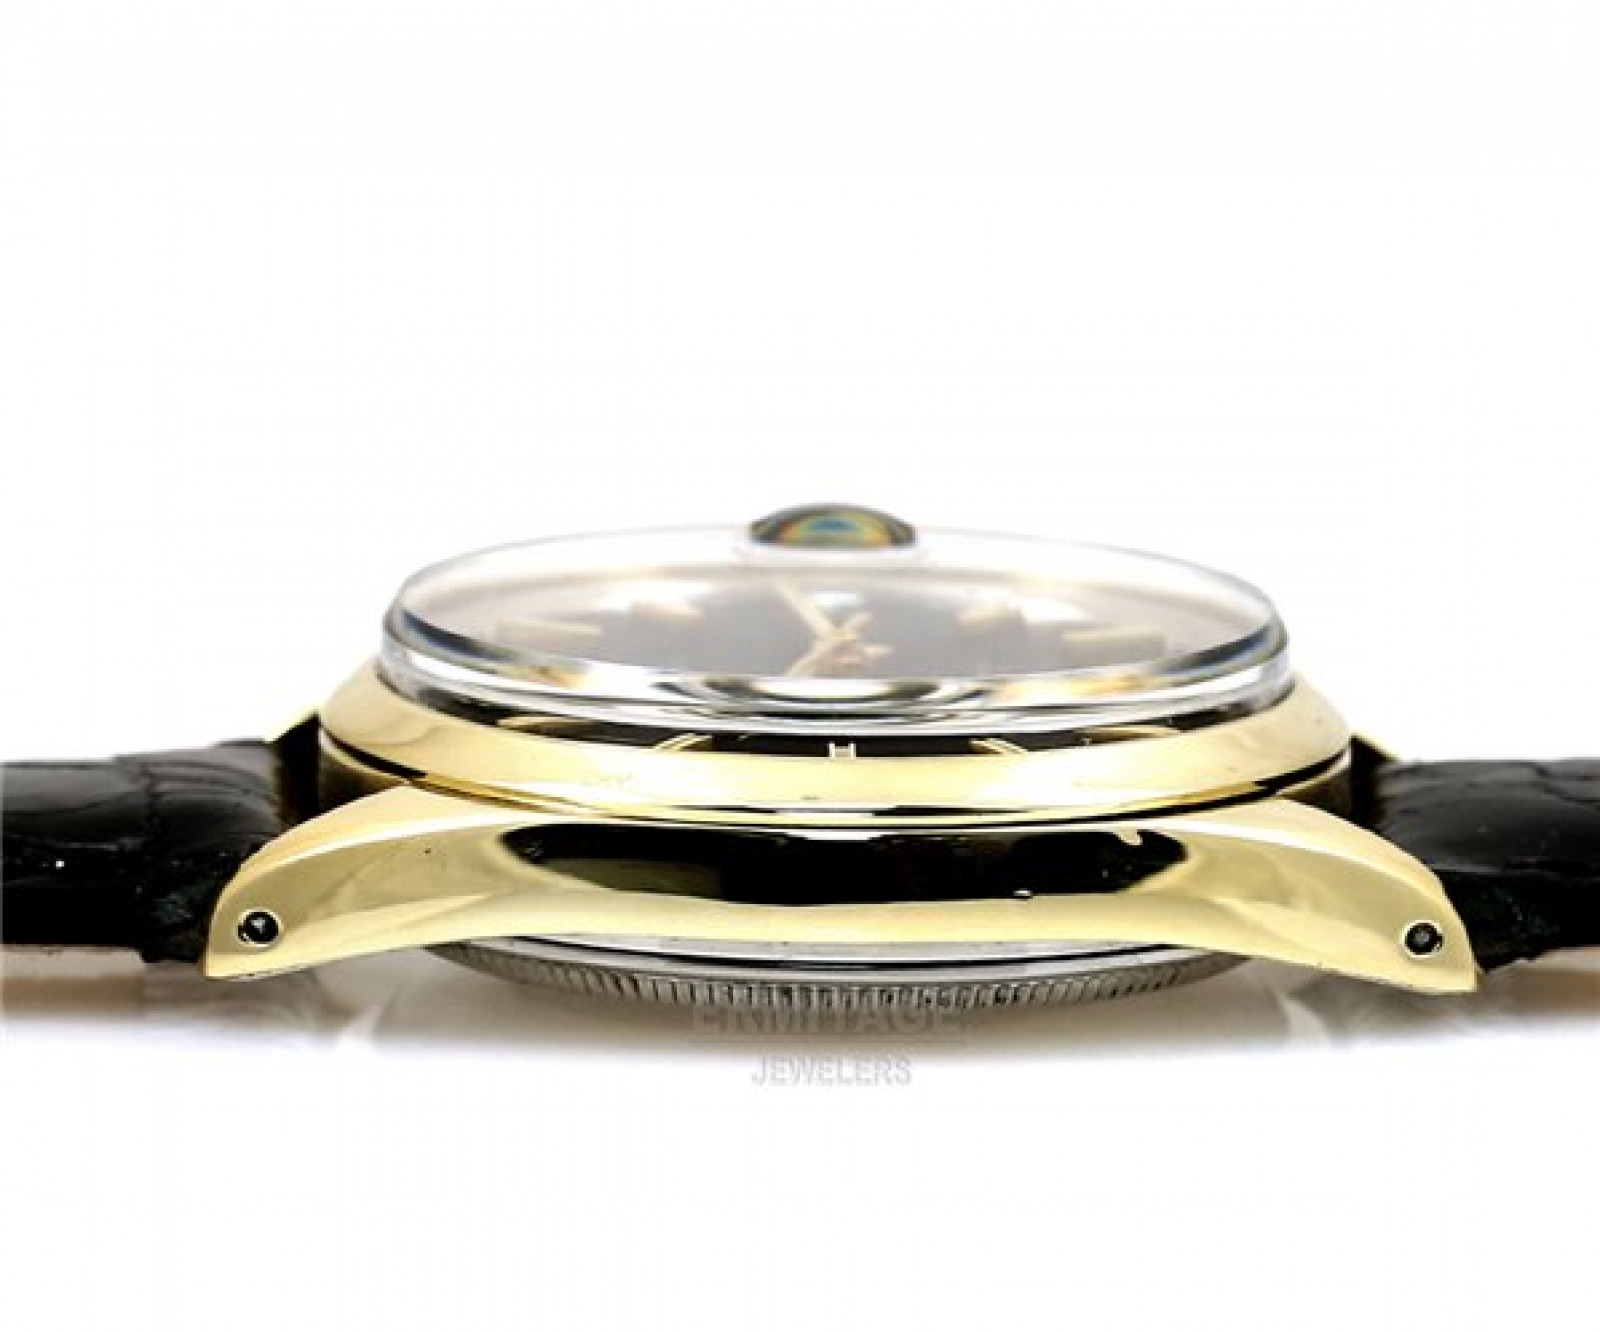 Vintage Rolex Date 1550 Gold with Black Dial